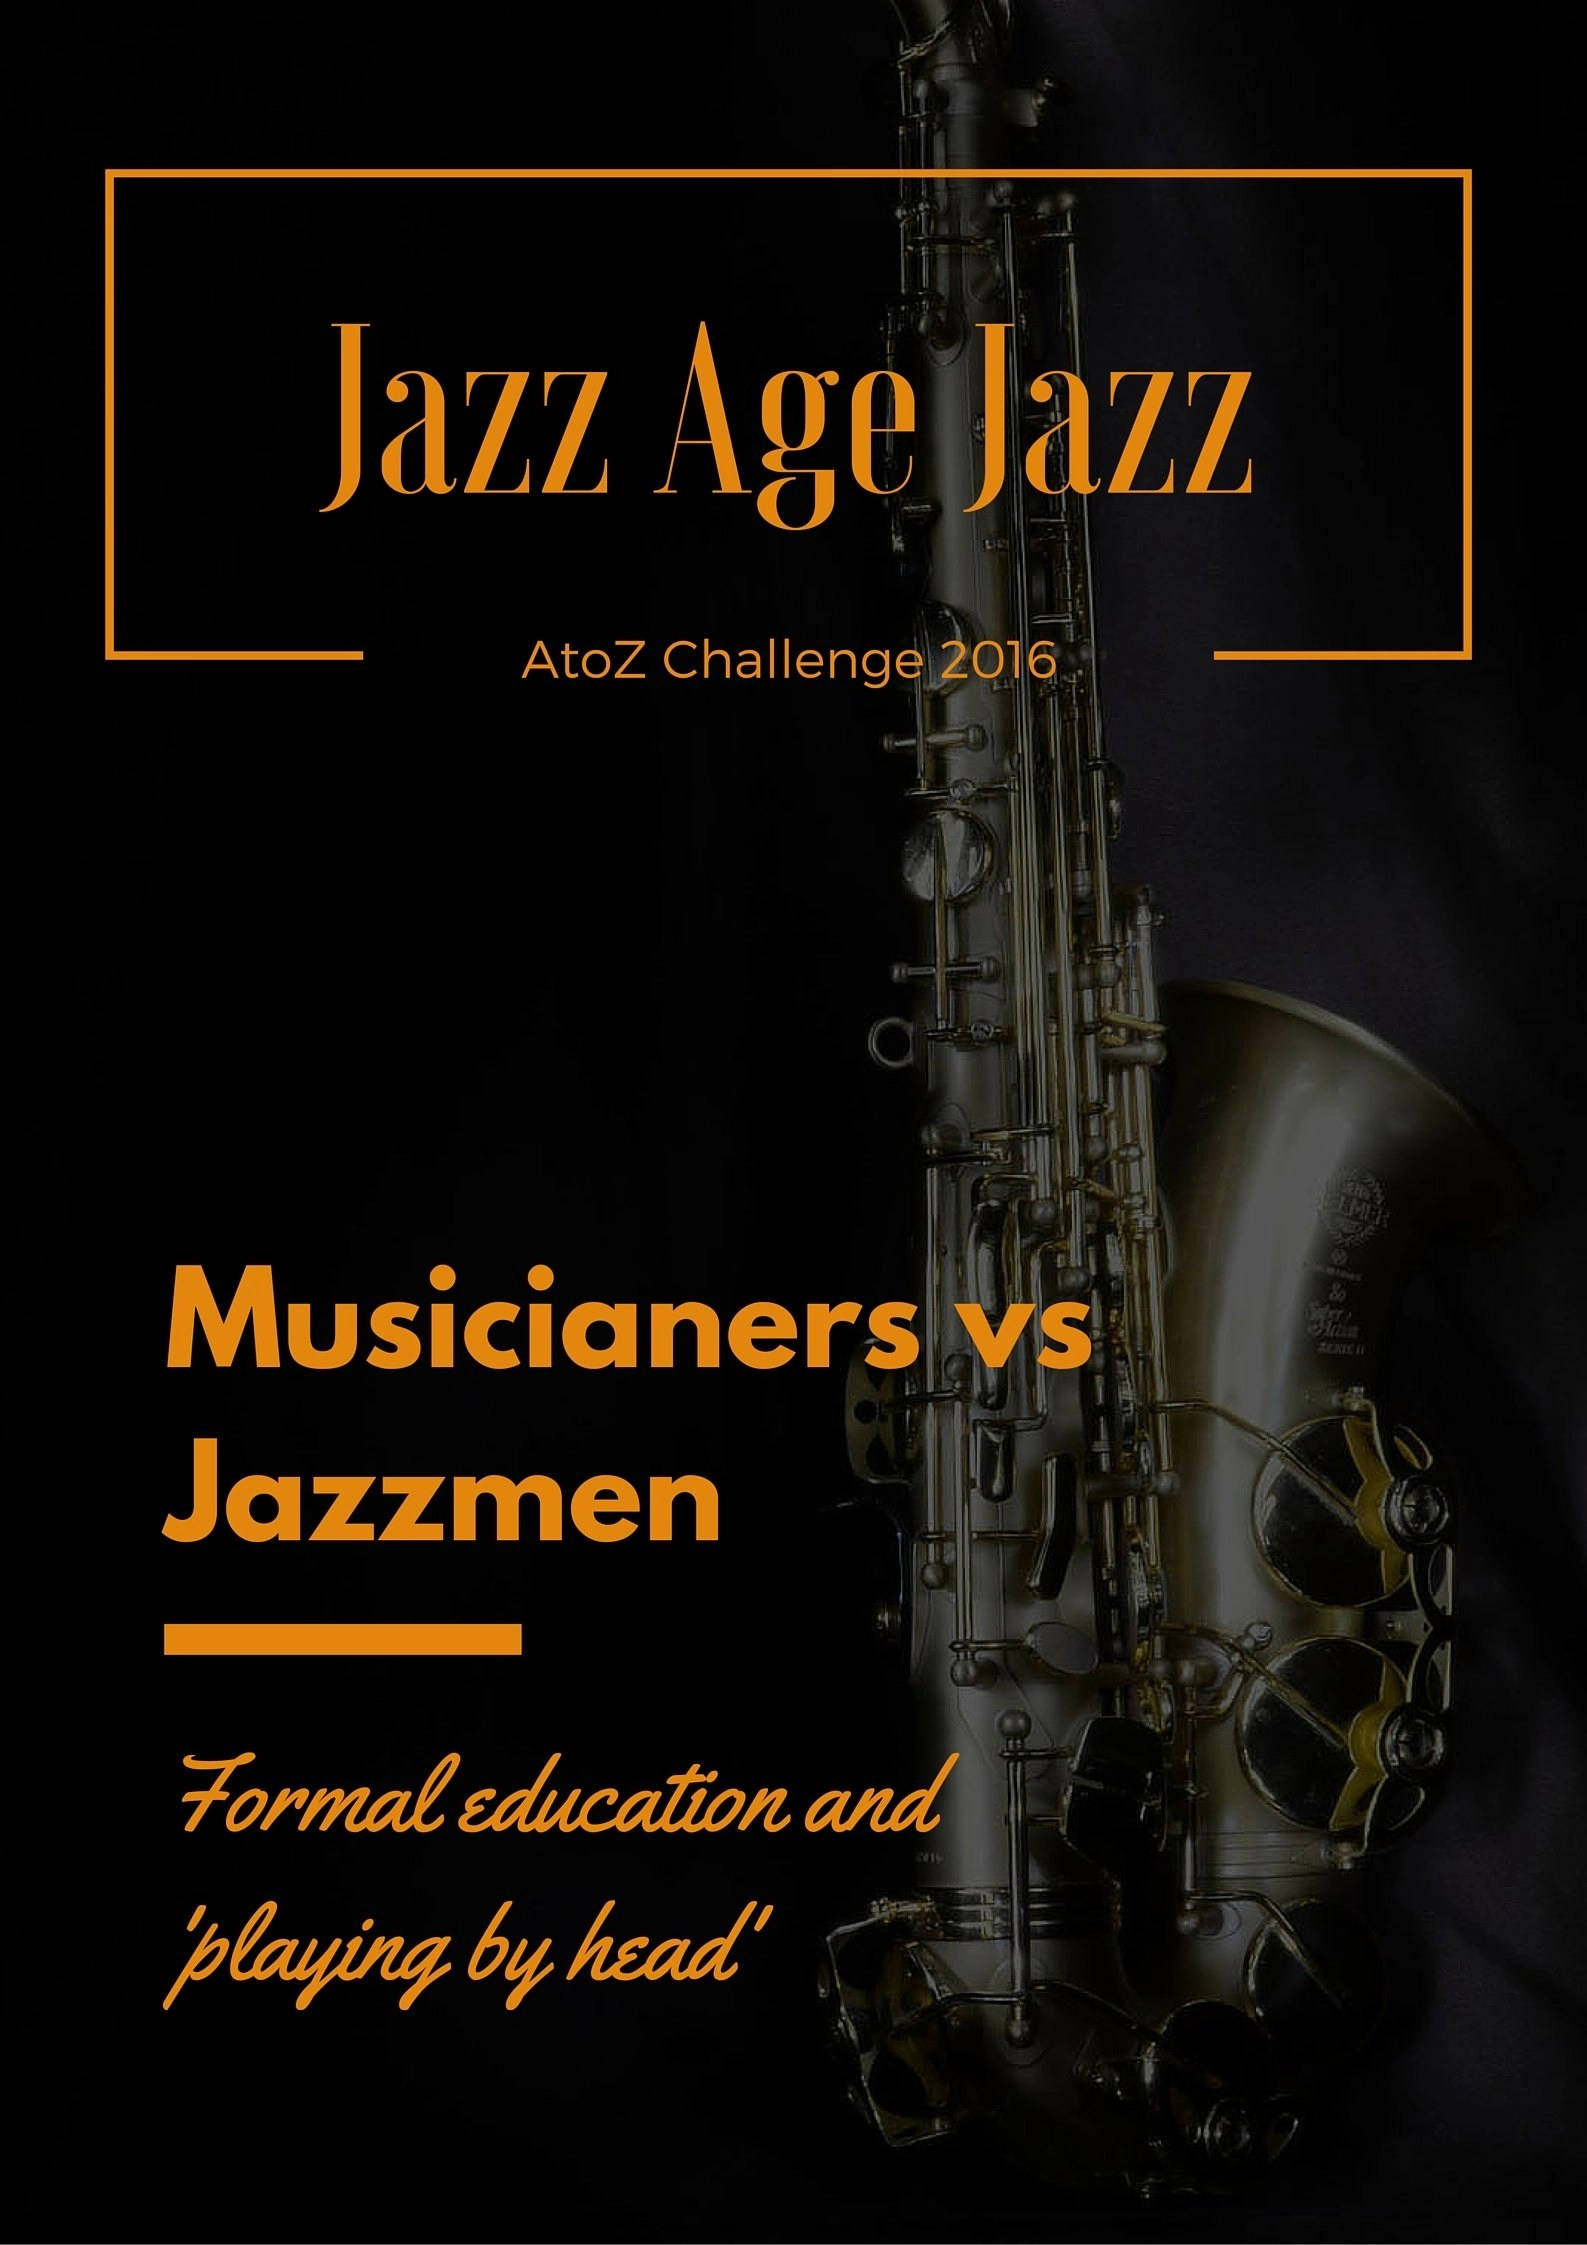 Jazz Age Jazz - Musicianers vs Jazzmen: formal education and 'playing by head'